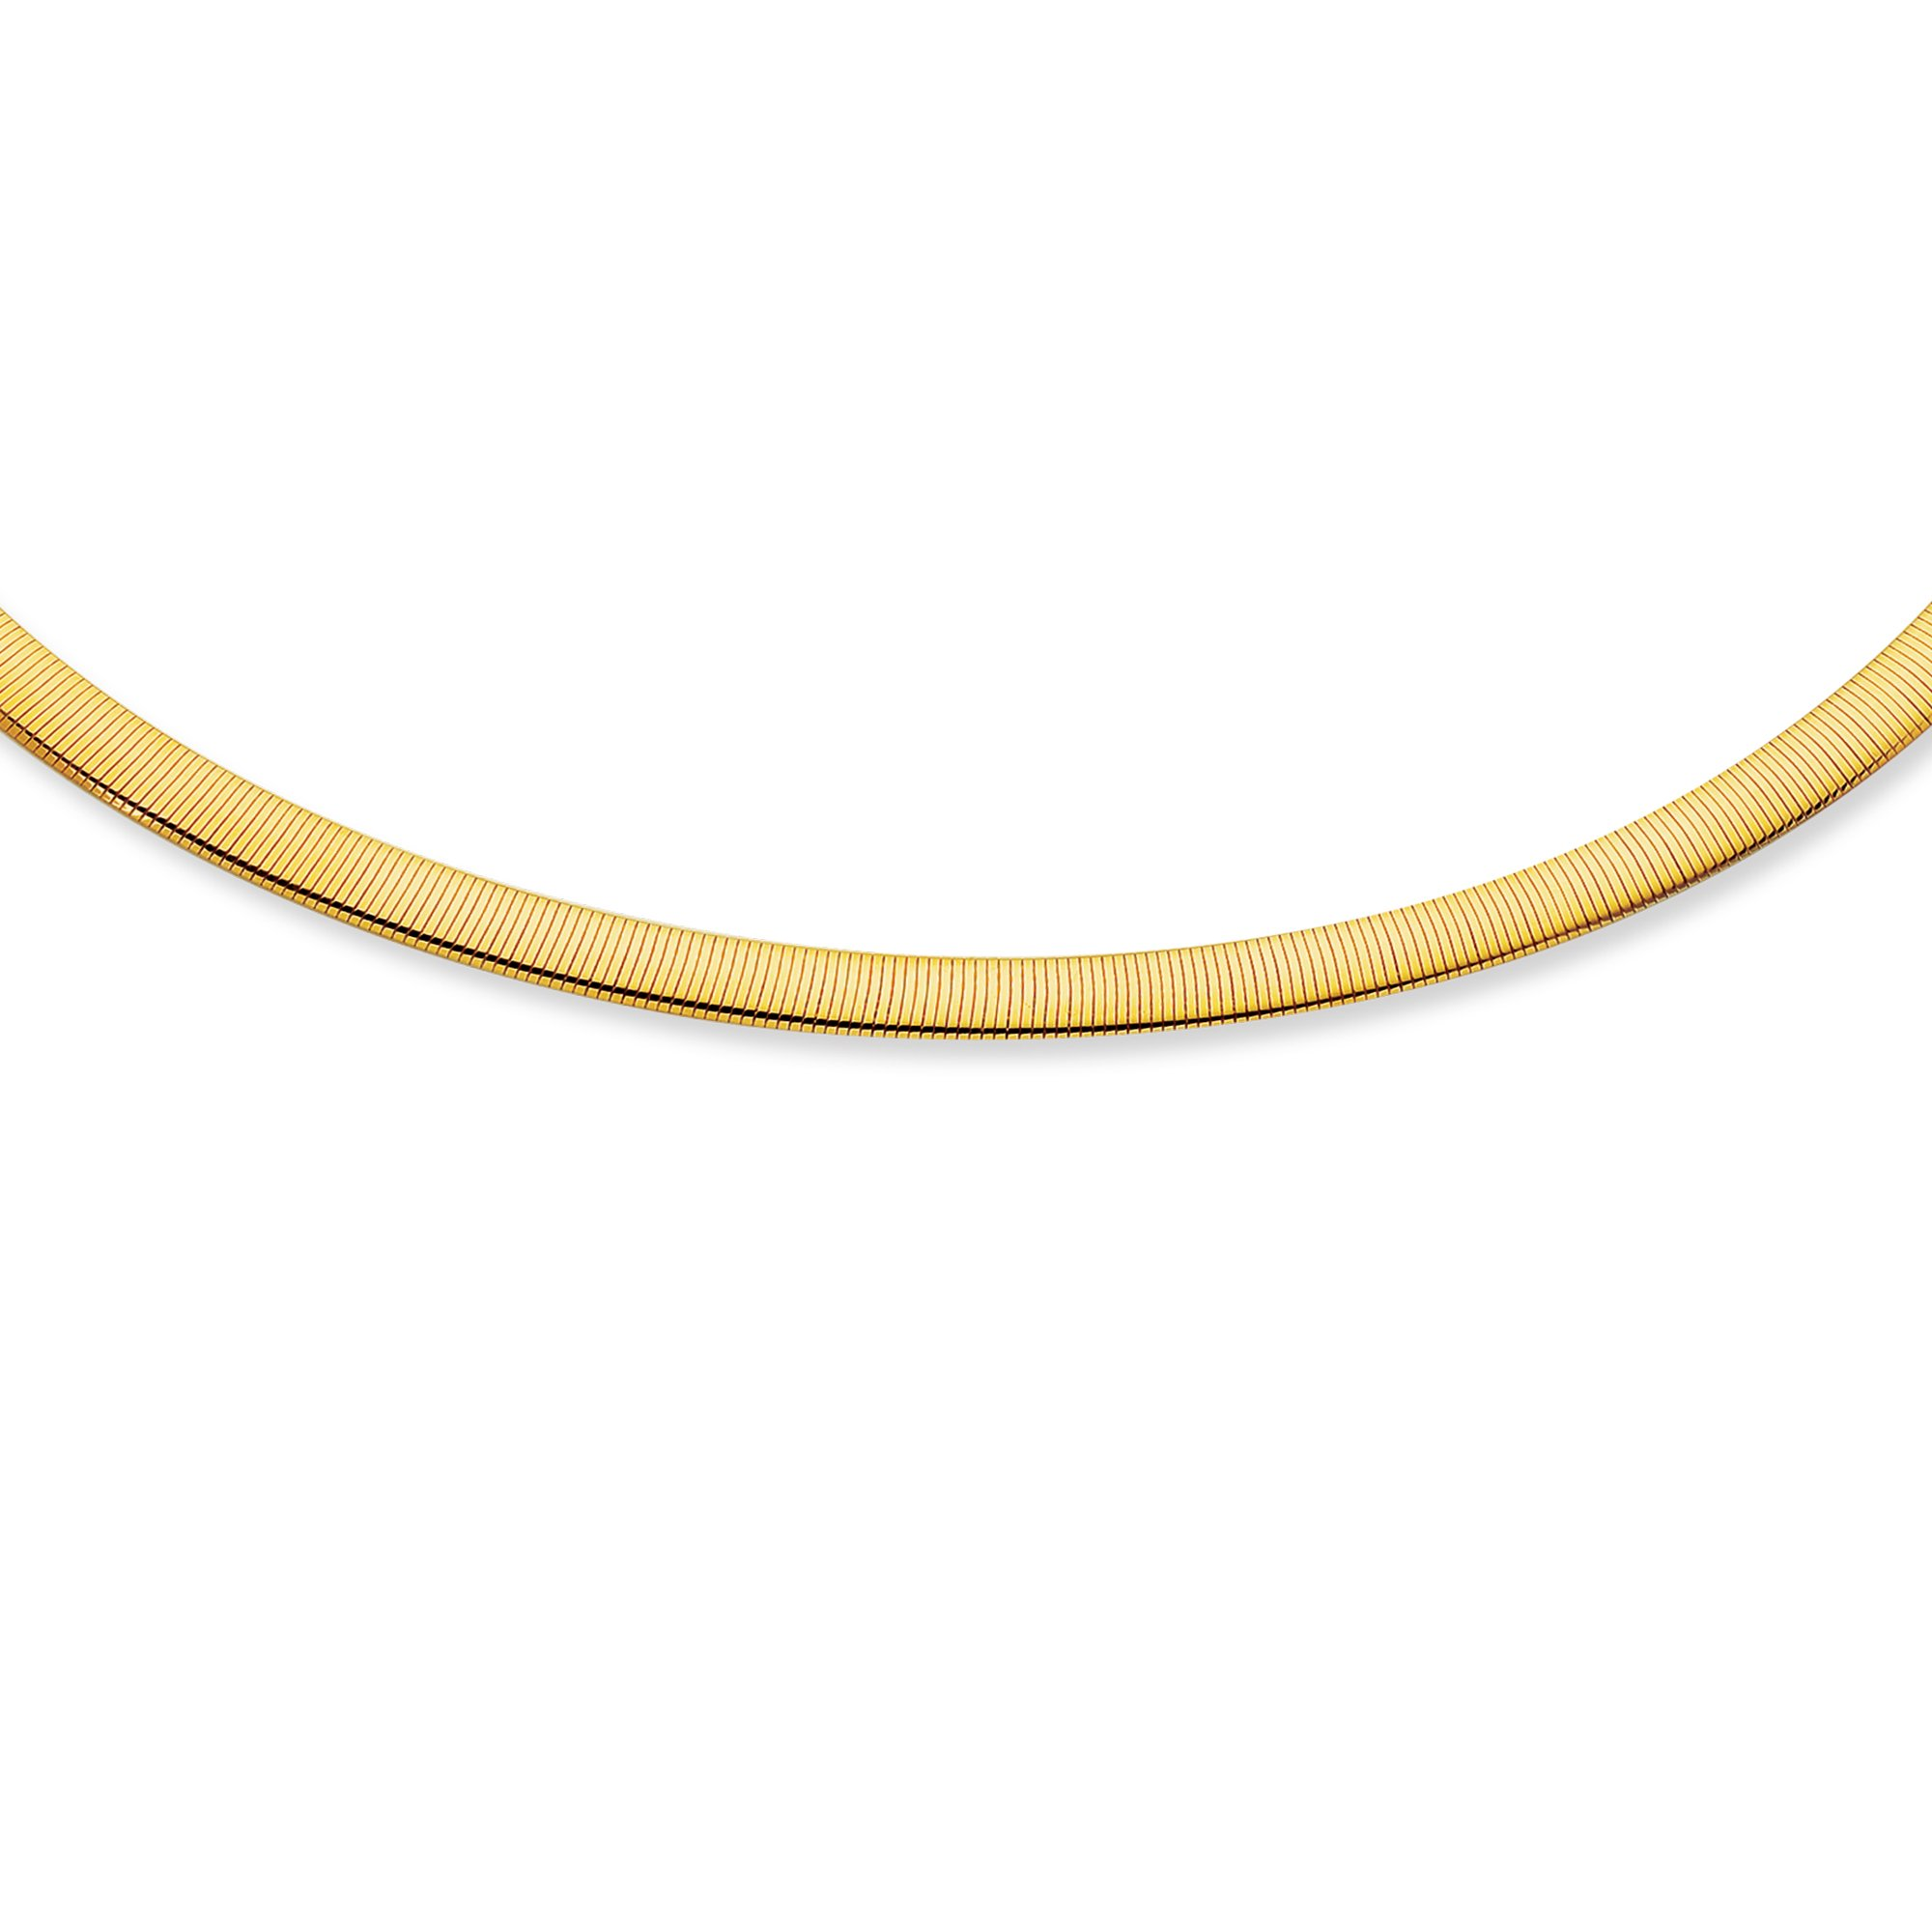 Jewelstop 14k Gold 6 mm Reversible Omega Necklace - 17''